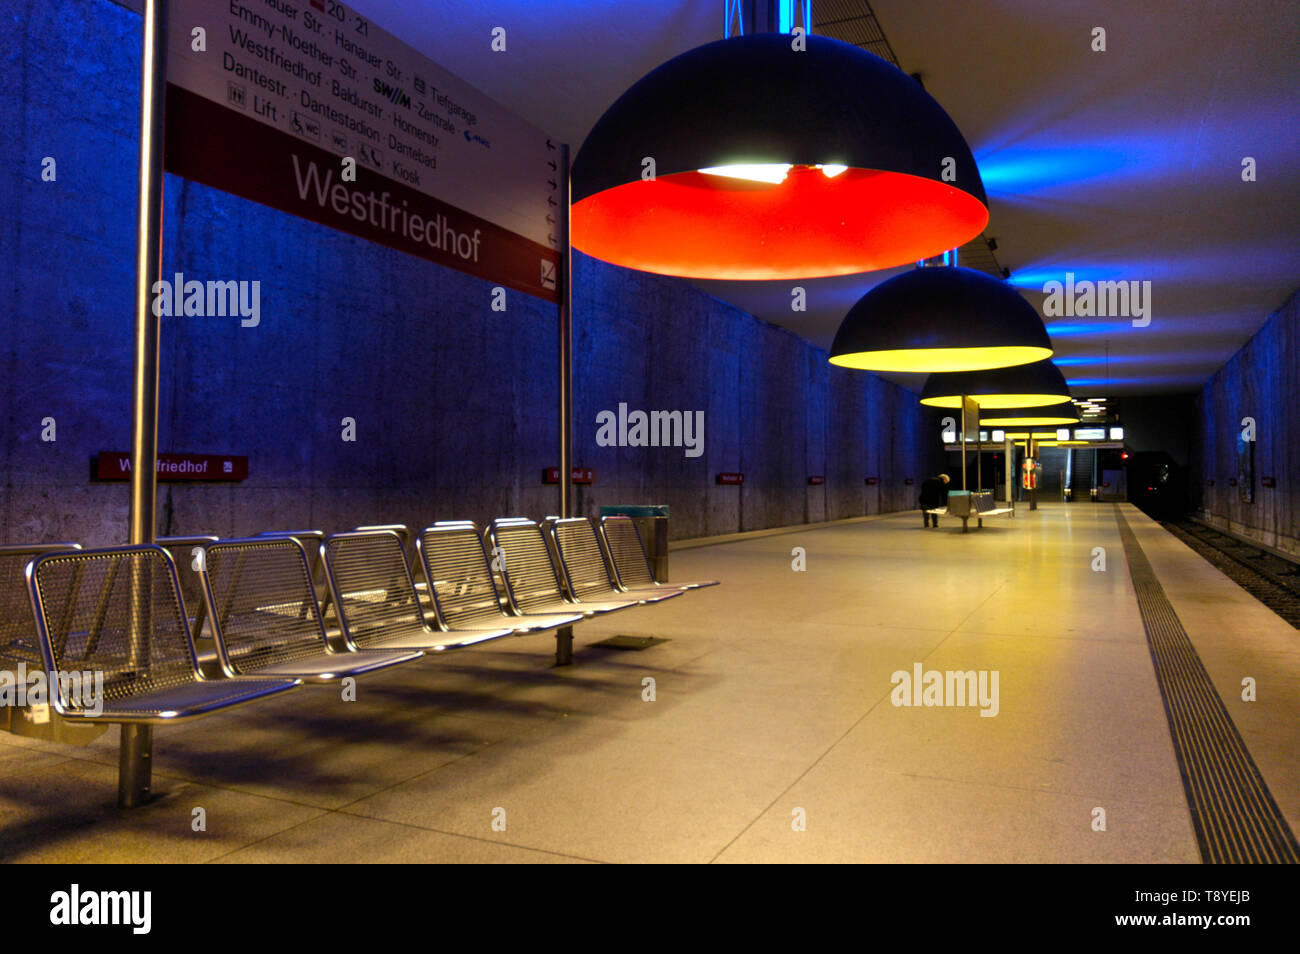 Colorful subway station Westfriedhof in Munich, Germany Stock Photo